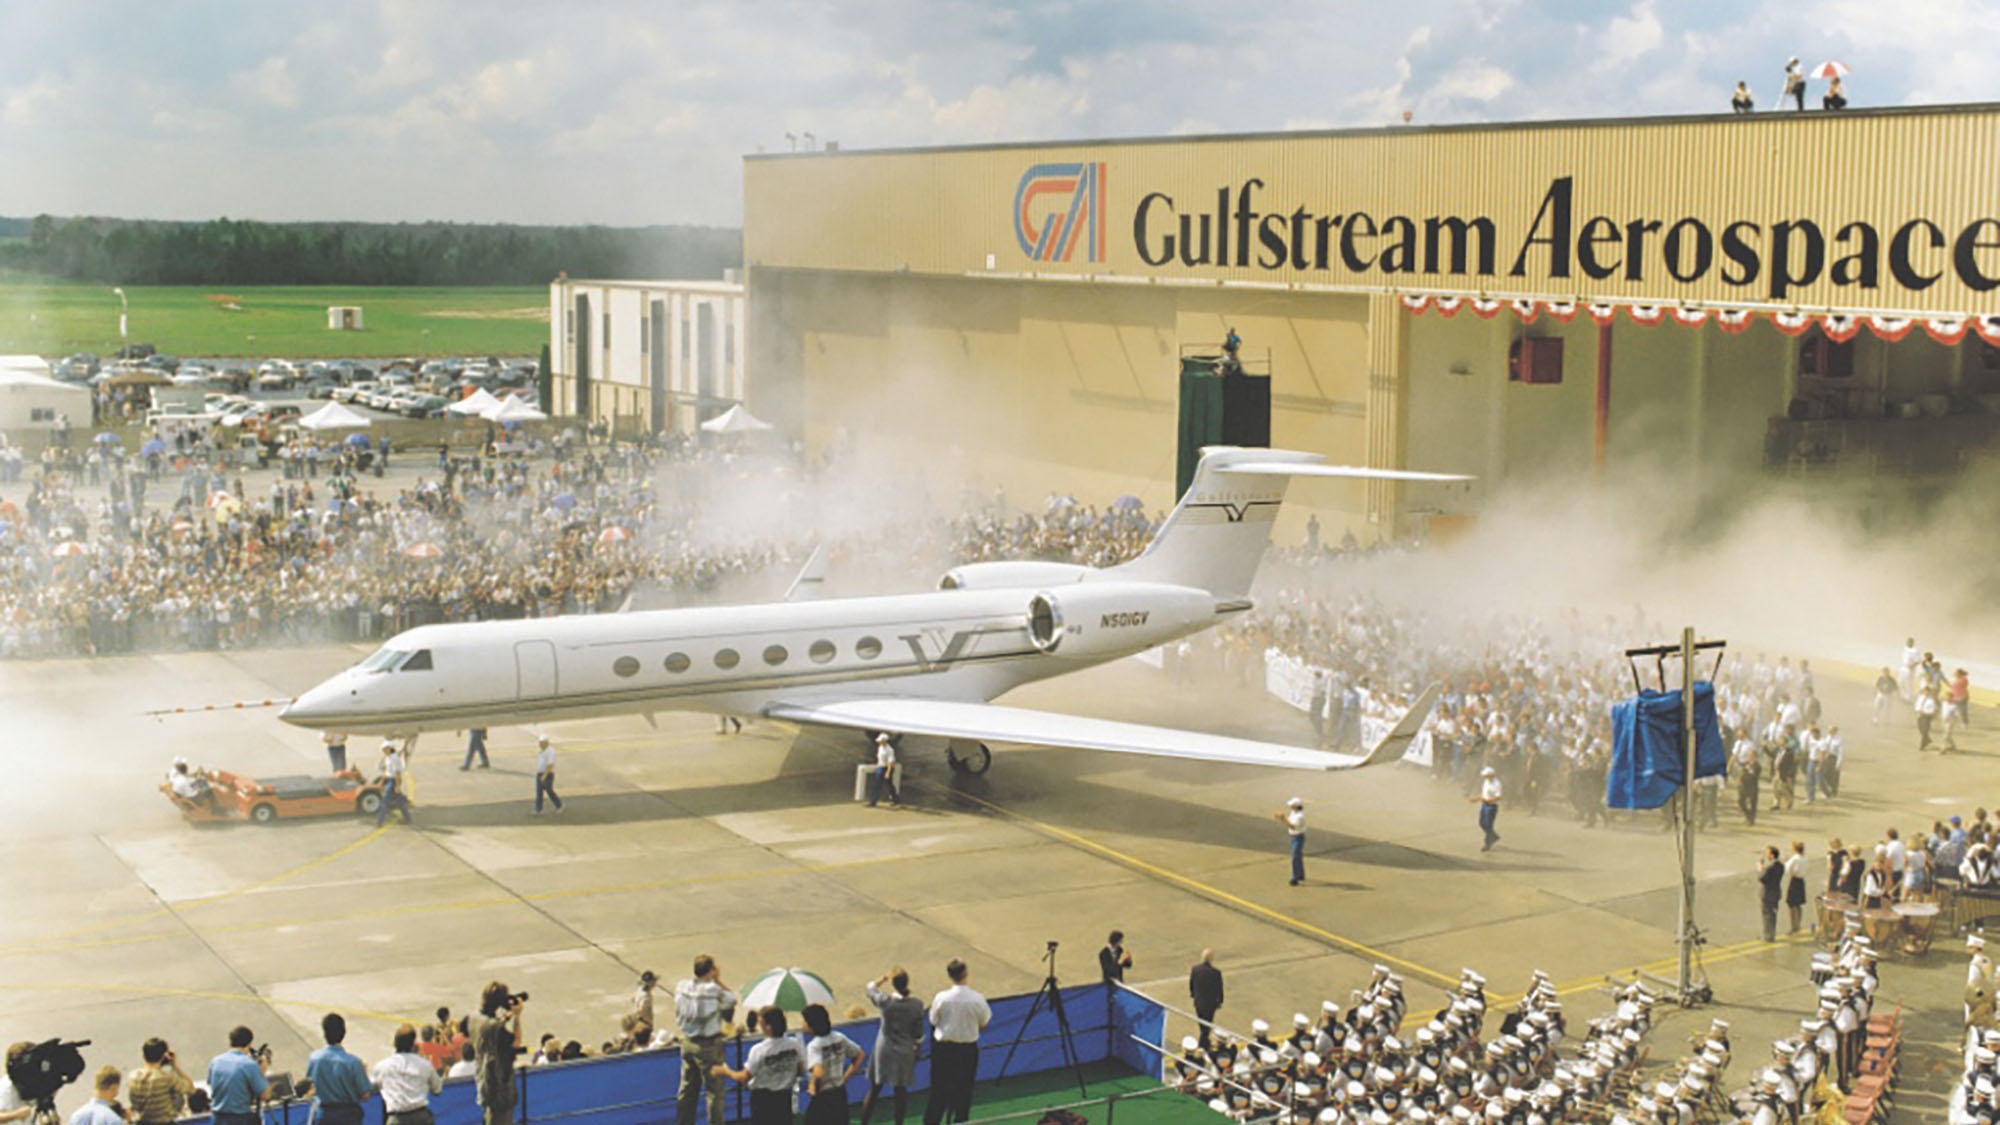 The Gulfstream GV rolls out on September 22, 1995